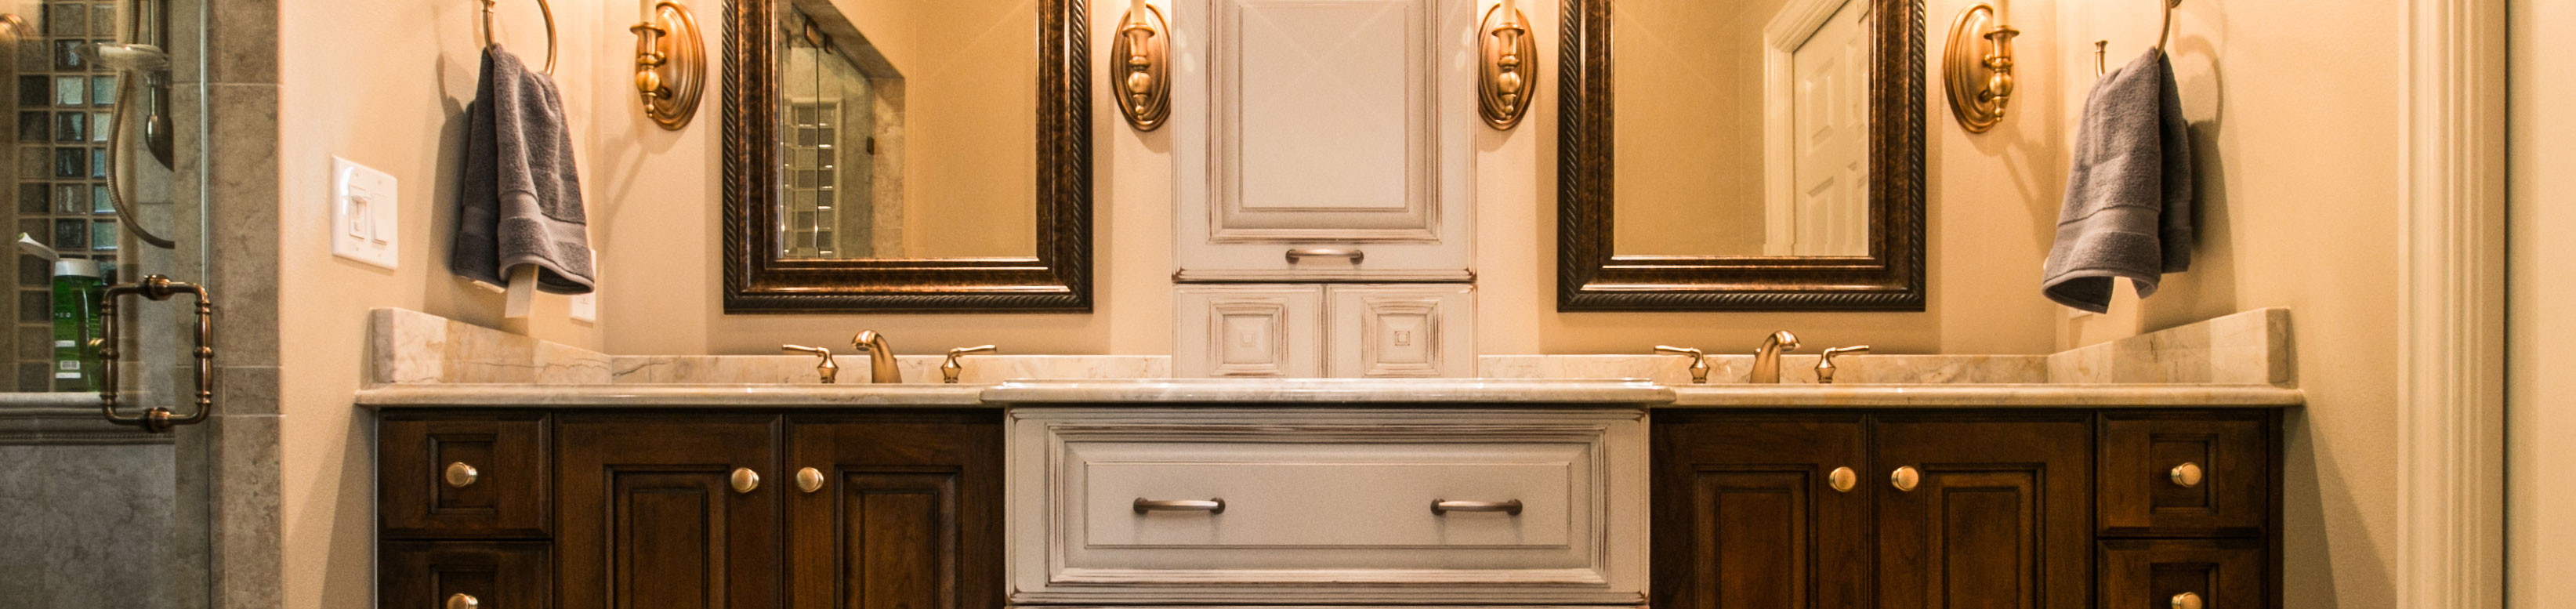 kitchen cabinets and bathroom vanities | gem cabinets edmonton, st